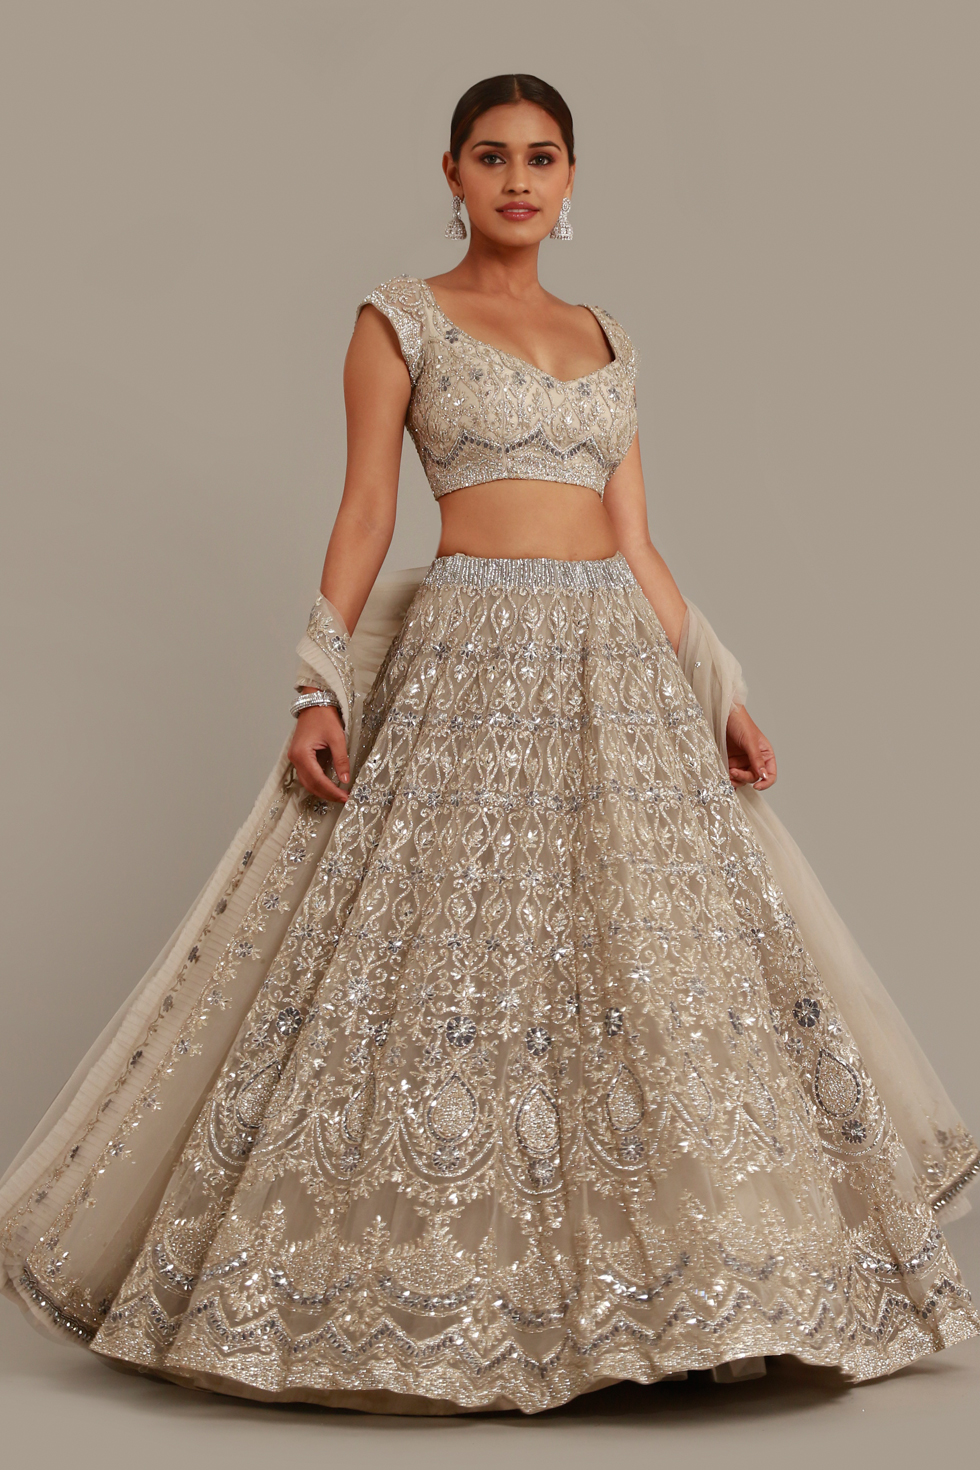 Steel grey lehenga set with silver grey embroidery and matching dupatta with frill details